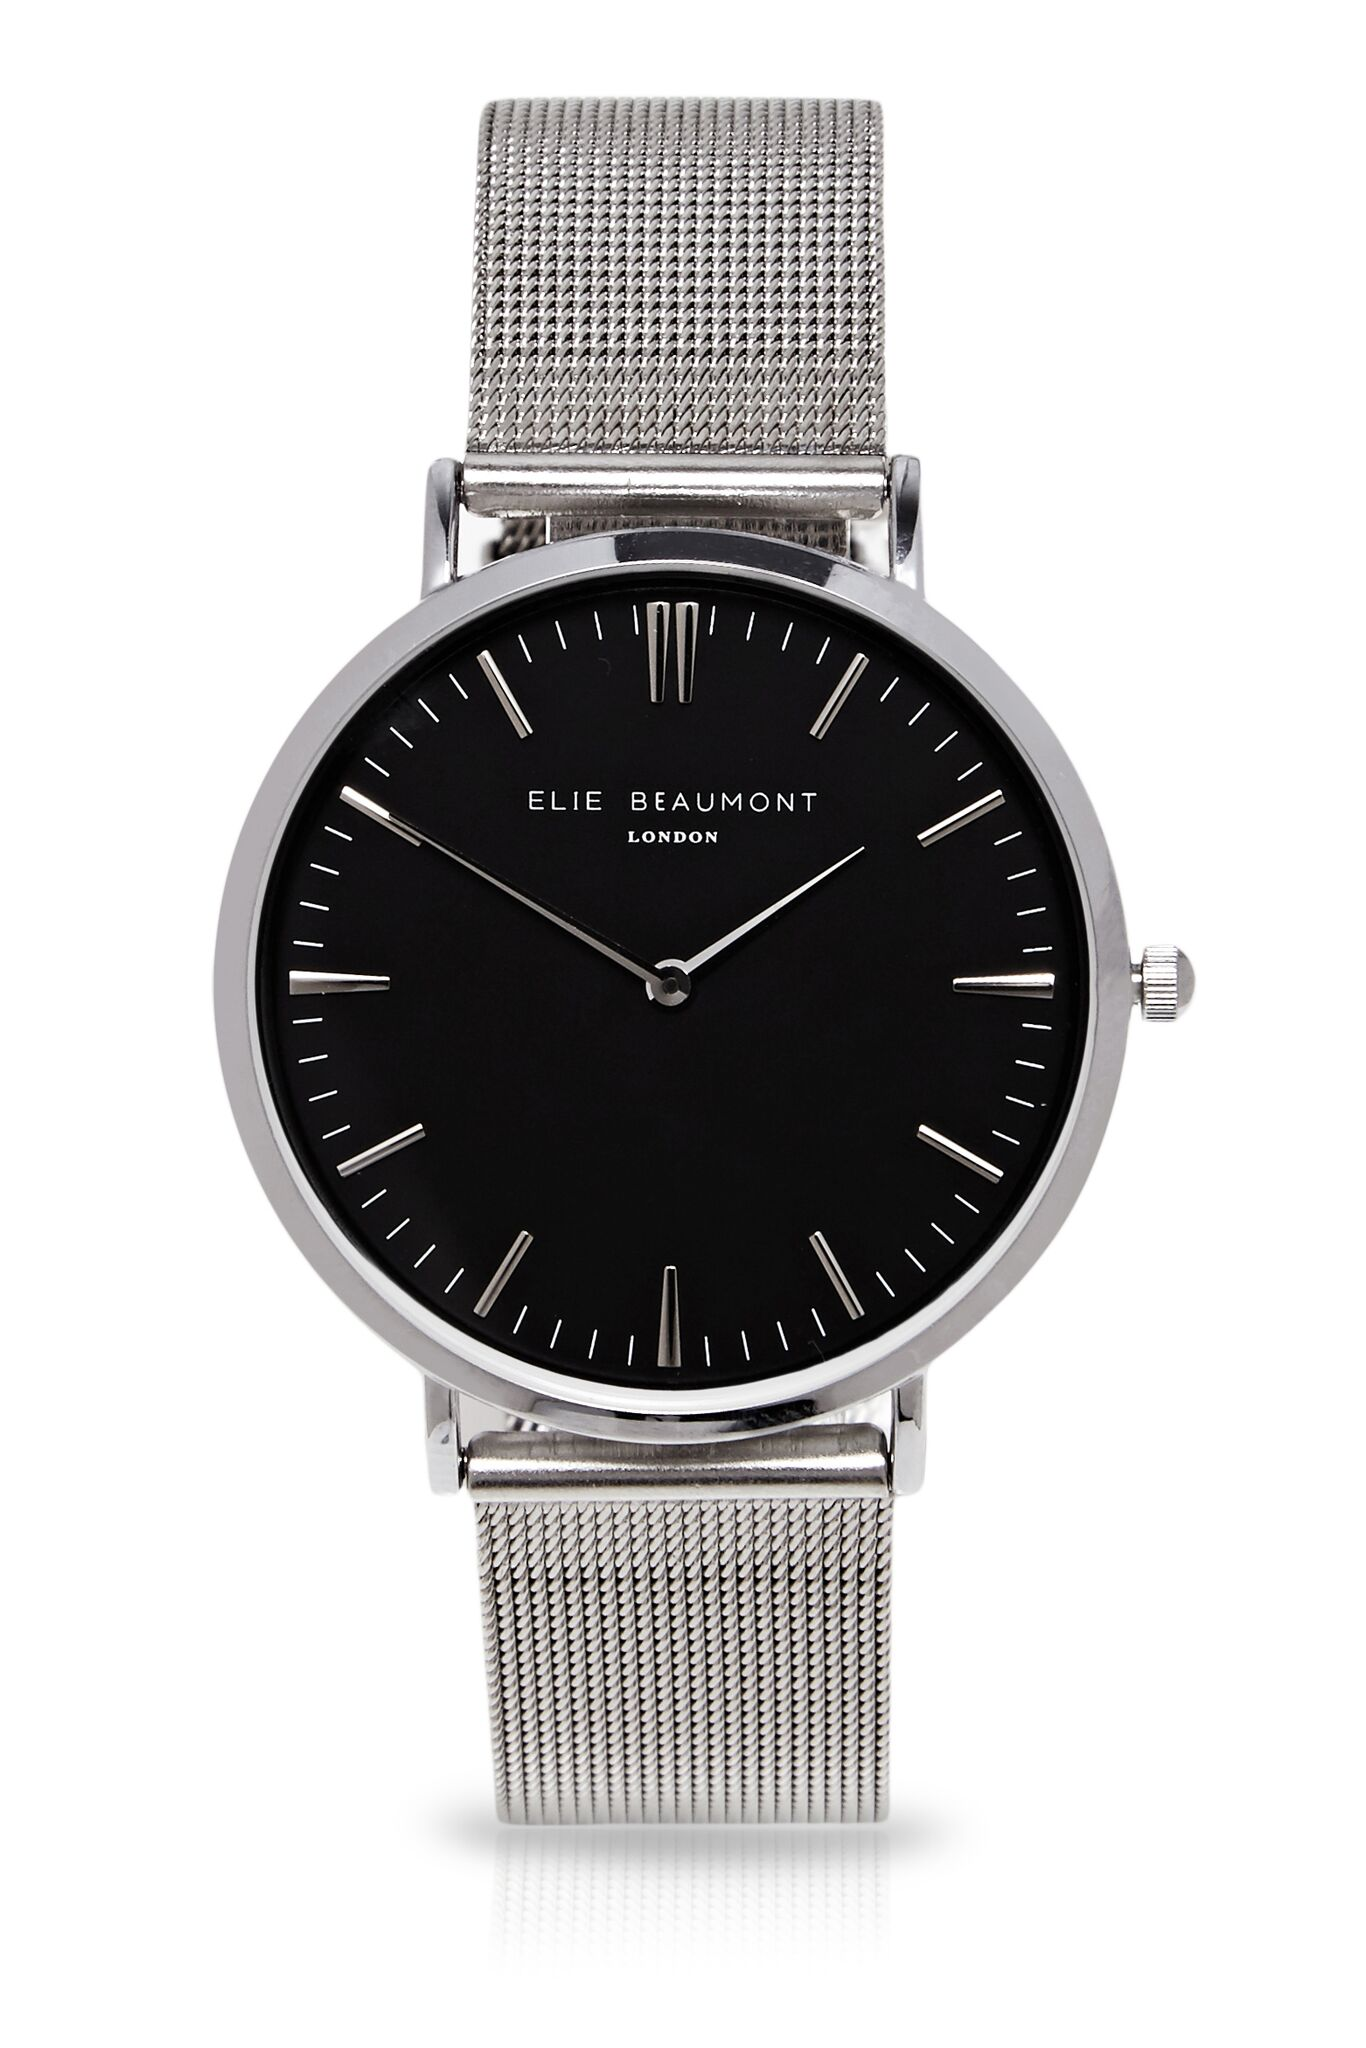 Elie Beaumont Large black face Oxford silver mesh watch